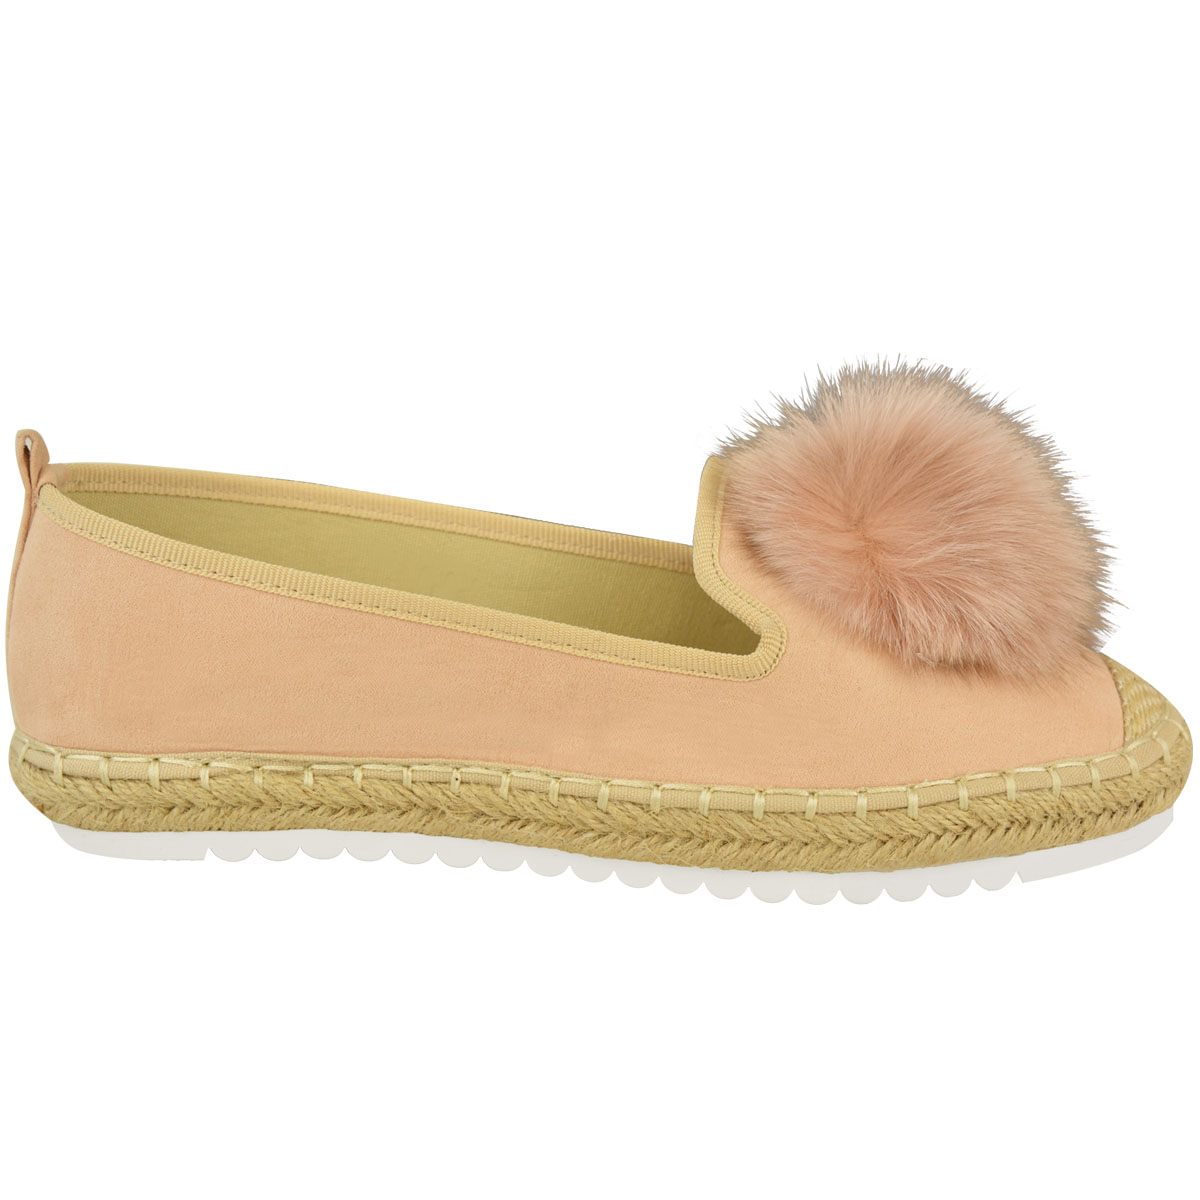 Womens-Ladies-Espadrilles-Flat-Pom-Pom-Sandals-Slip-On-Strappy-Comfy-Size-Shoes thumbnail 27